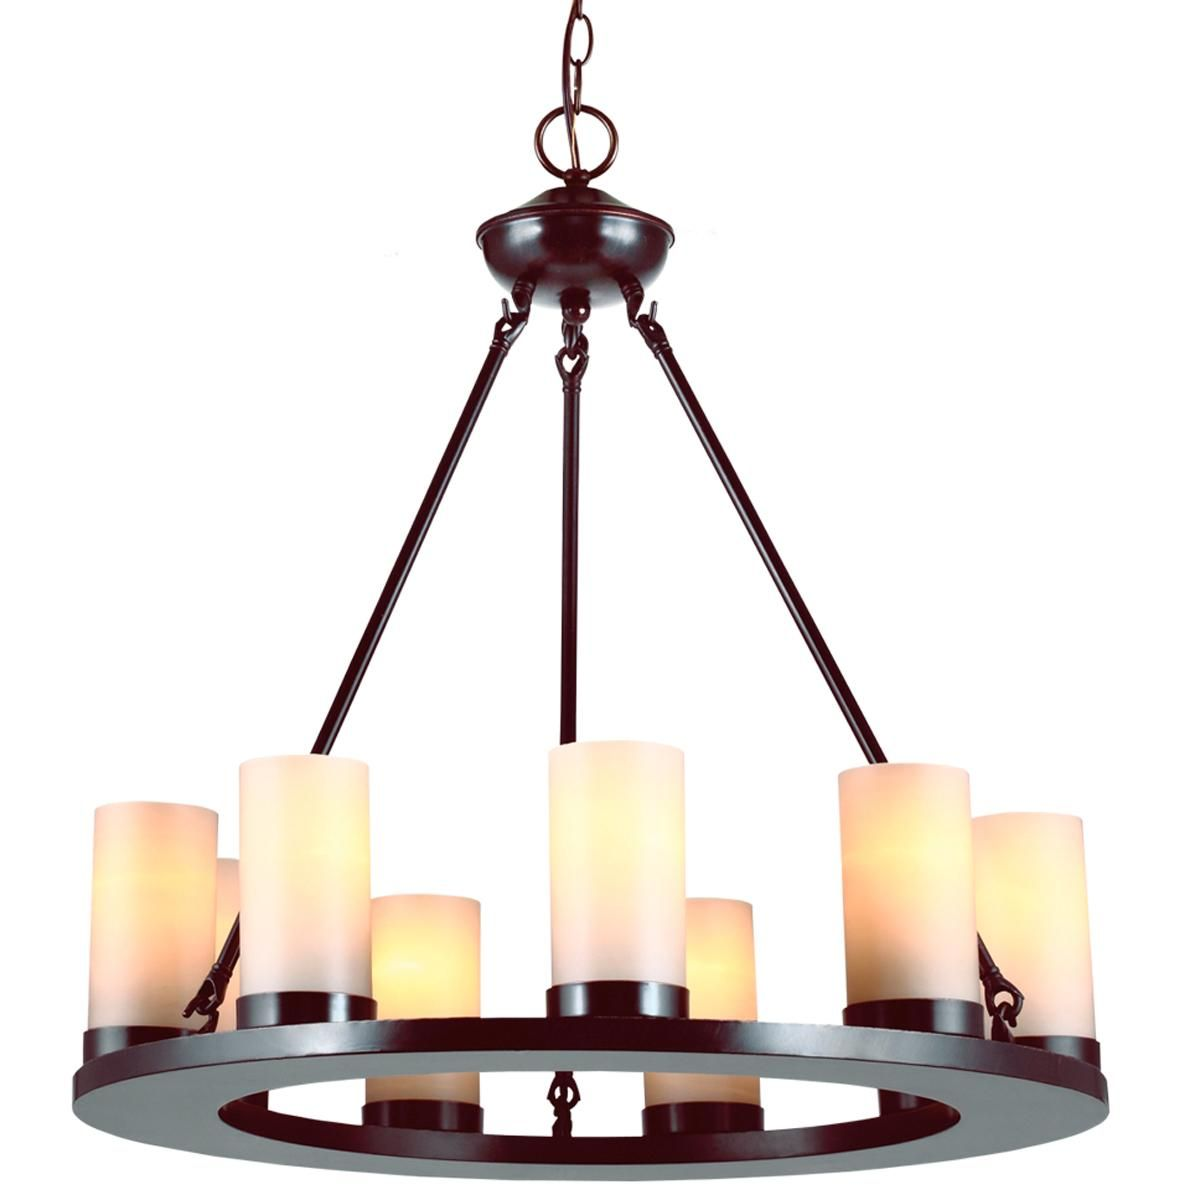 Rustic chic tray chandelier 9 lights looks like stream lined rustic chic tray chandelier 9 lights looks like stream lined version of the one aloadofball Images